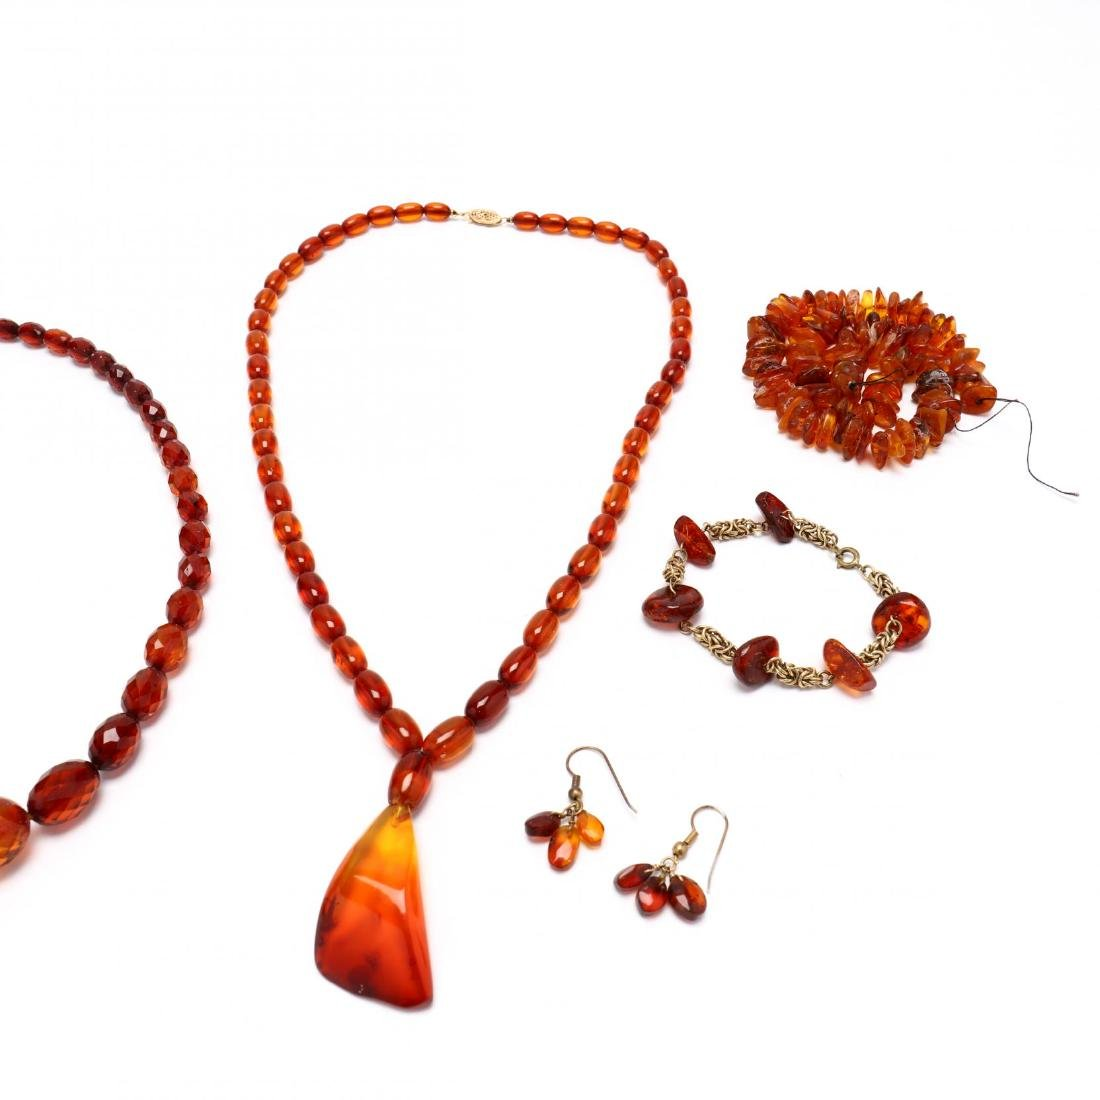 Group of Amber Bead Jewelry - 2